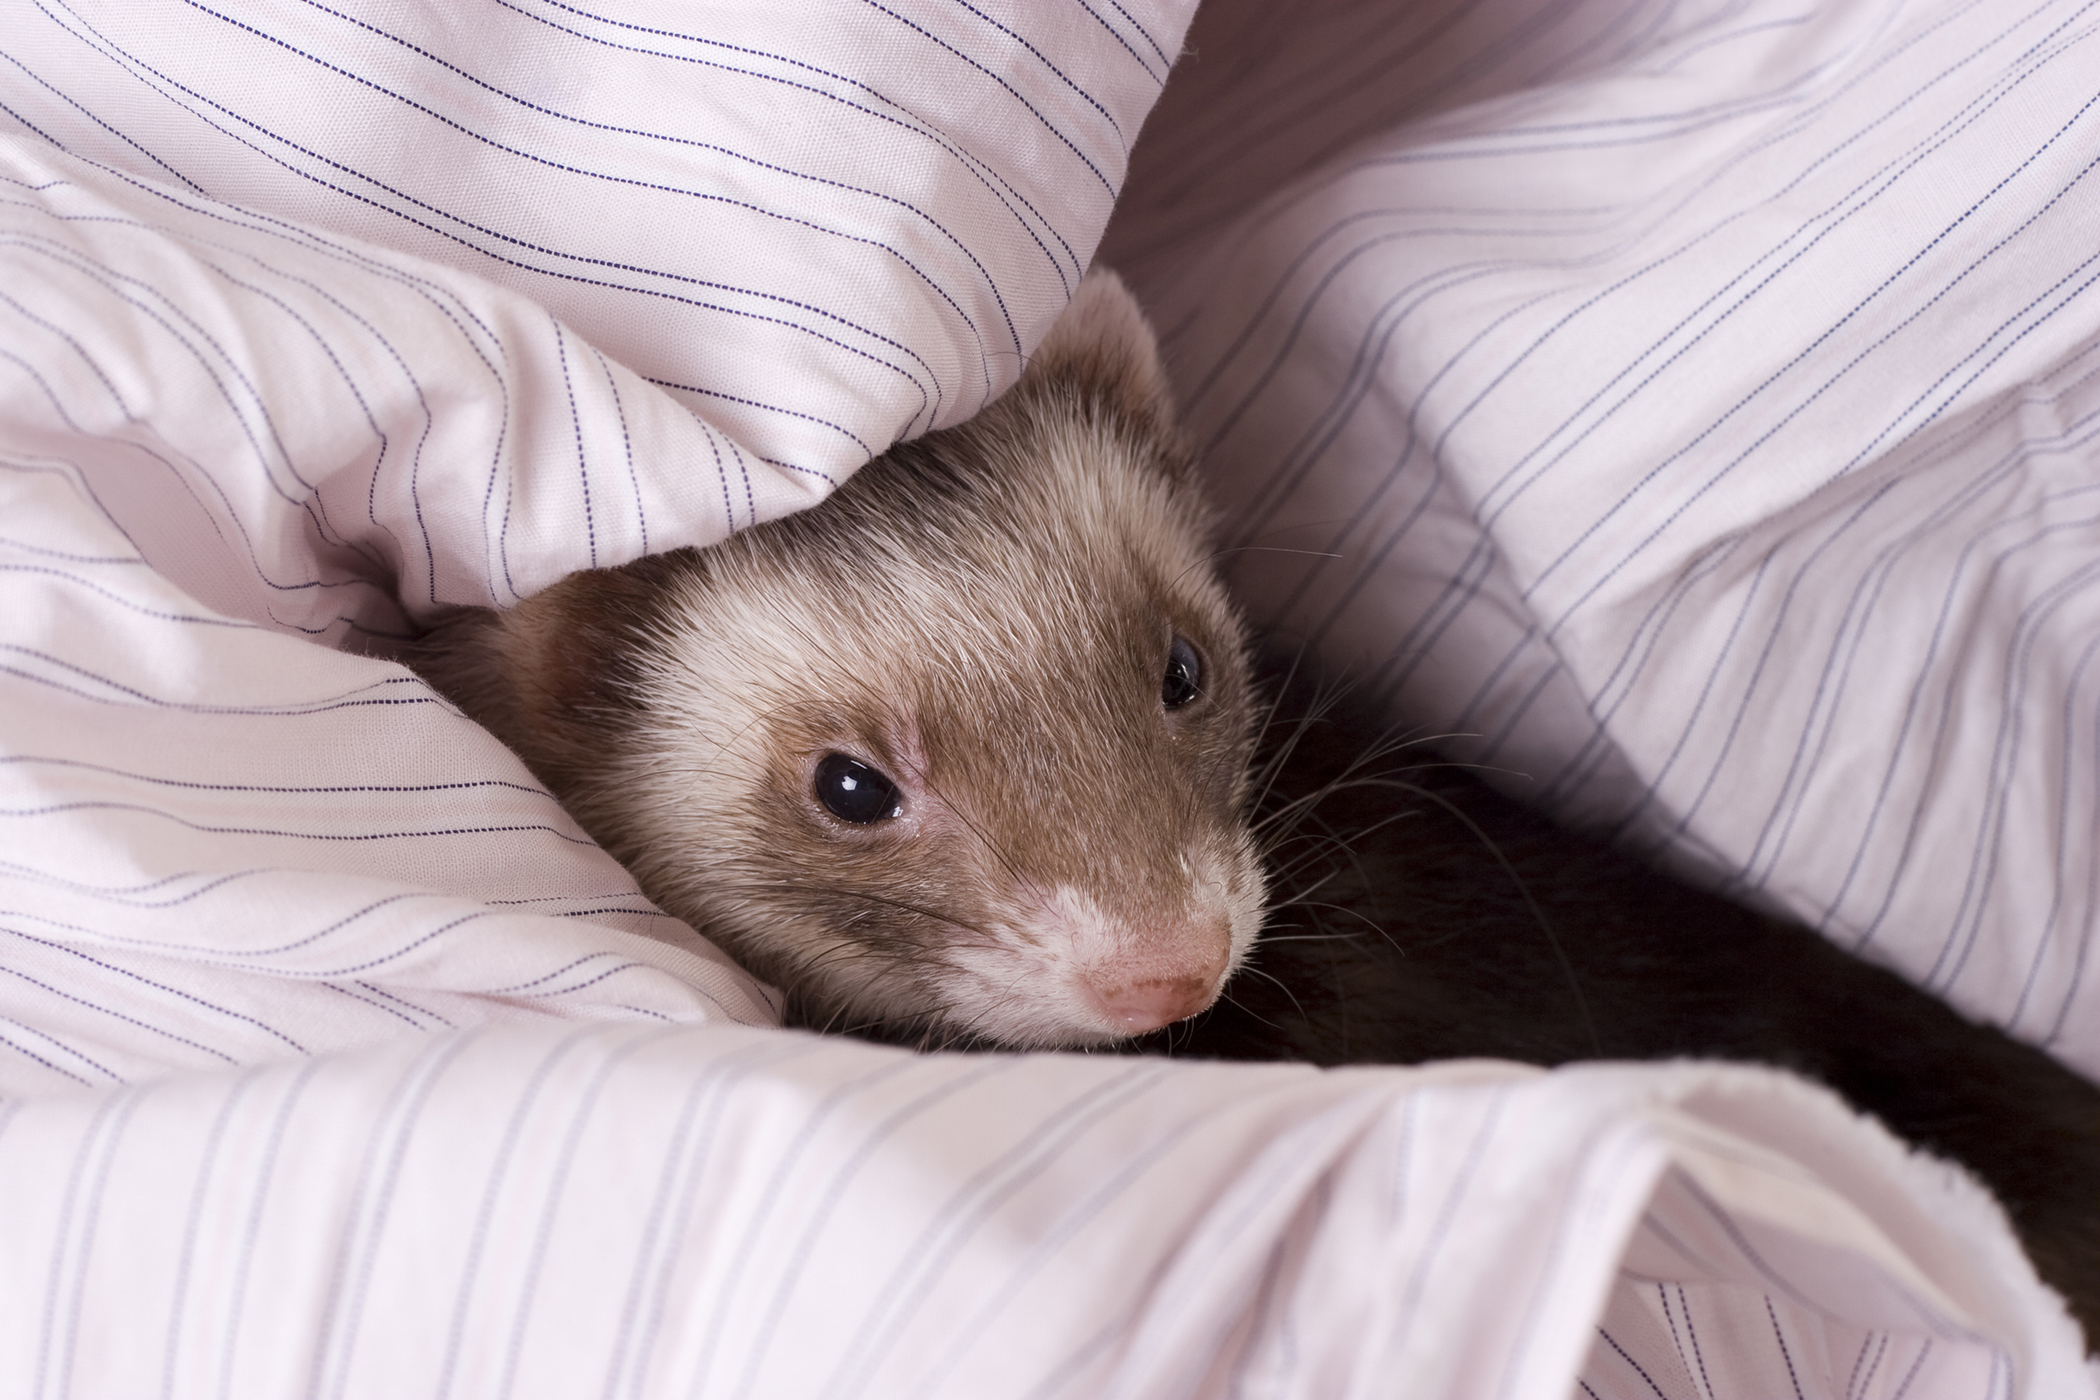 Difficult, Painful, and Frequent Urination in Ferrets